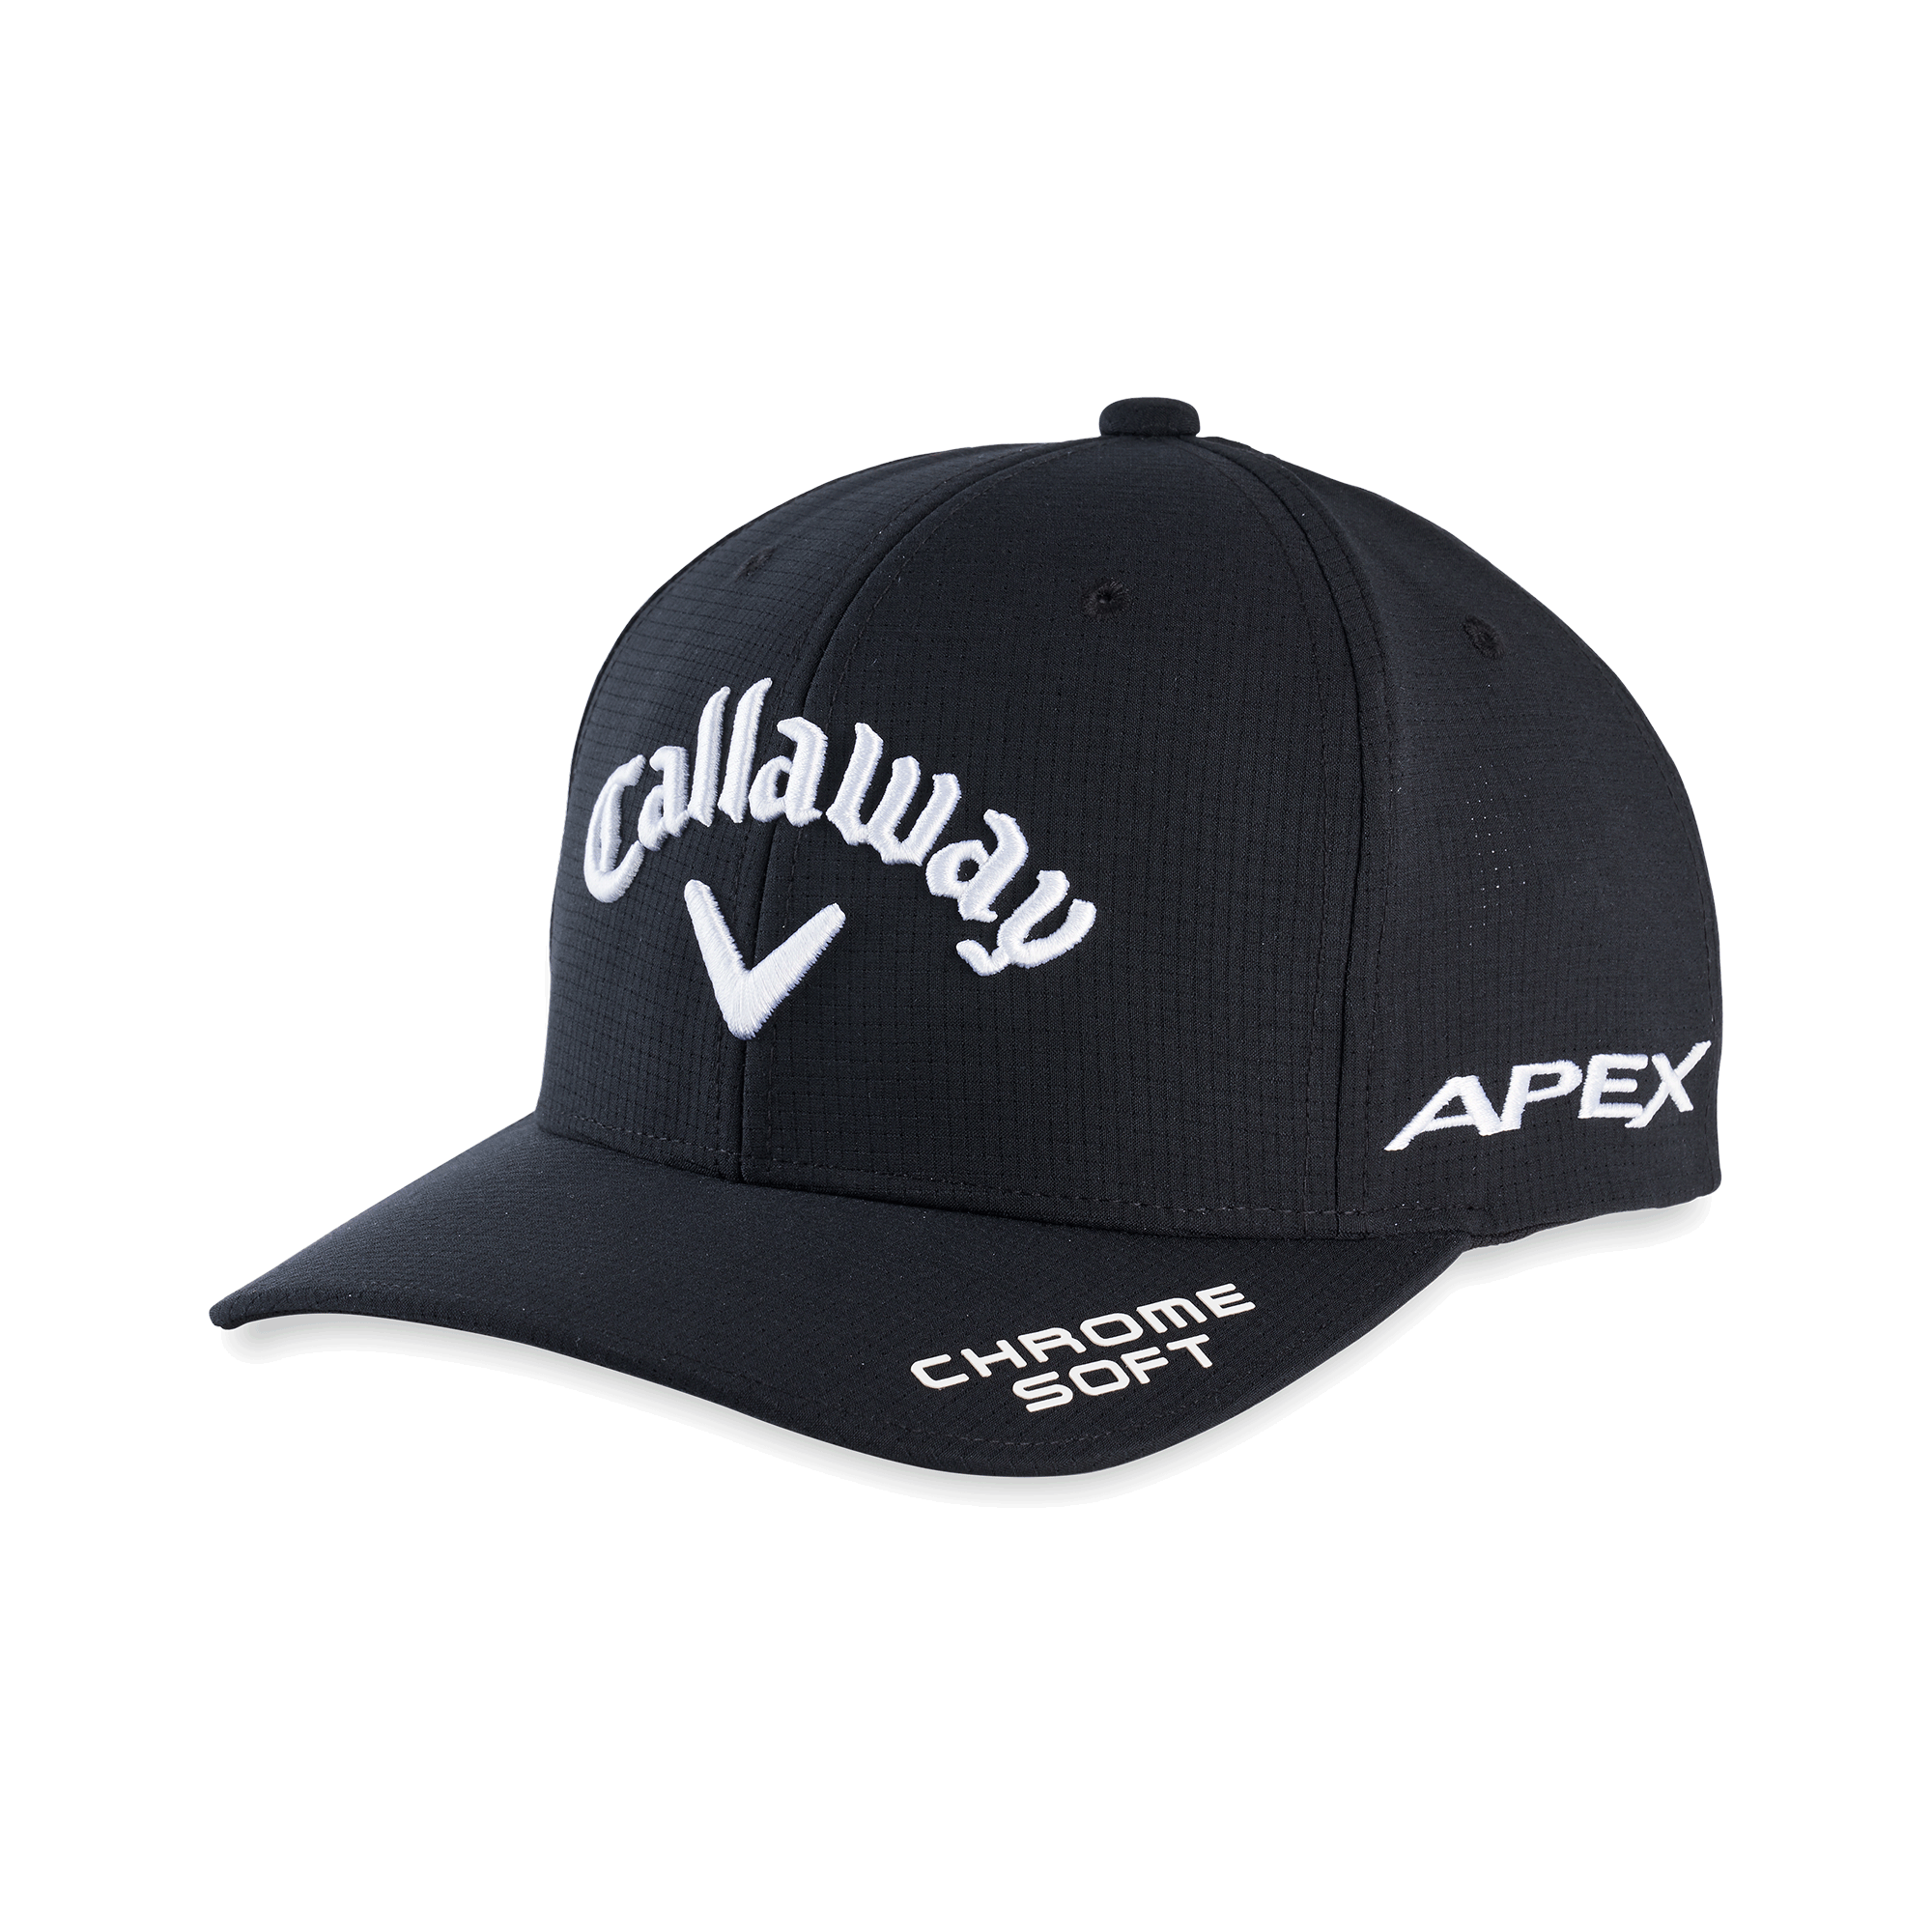 Tour Authentic Performance Pro XL Cap